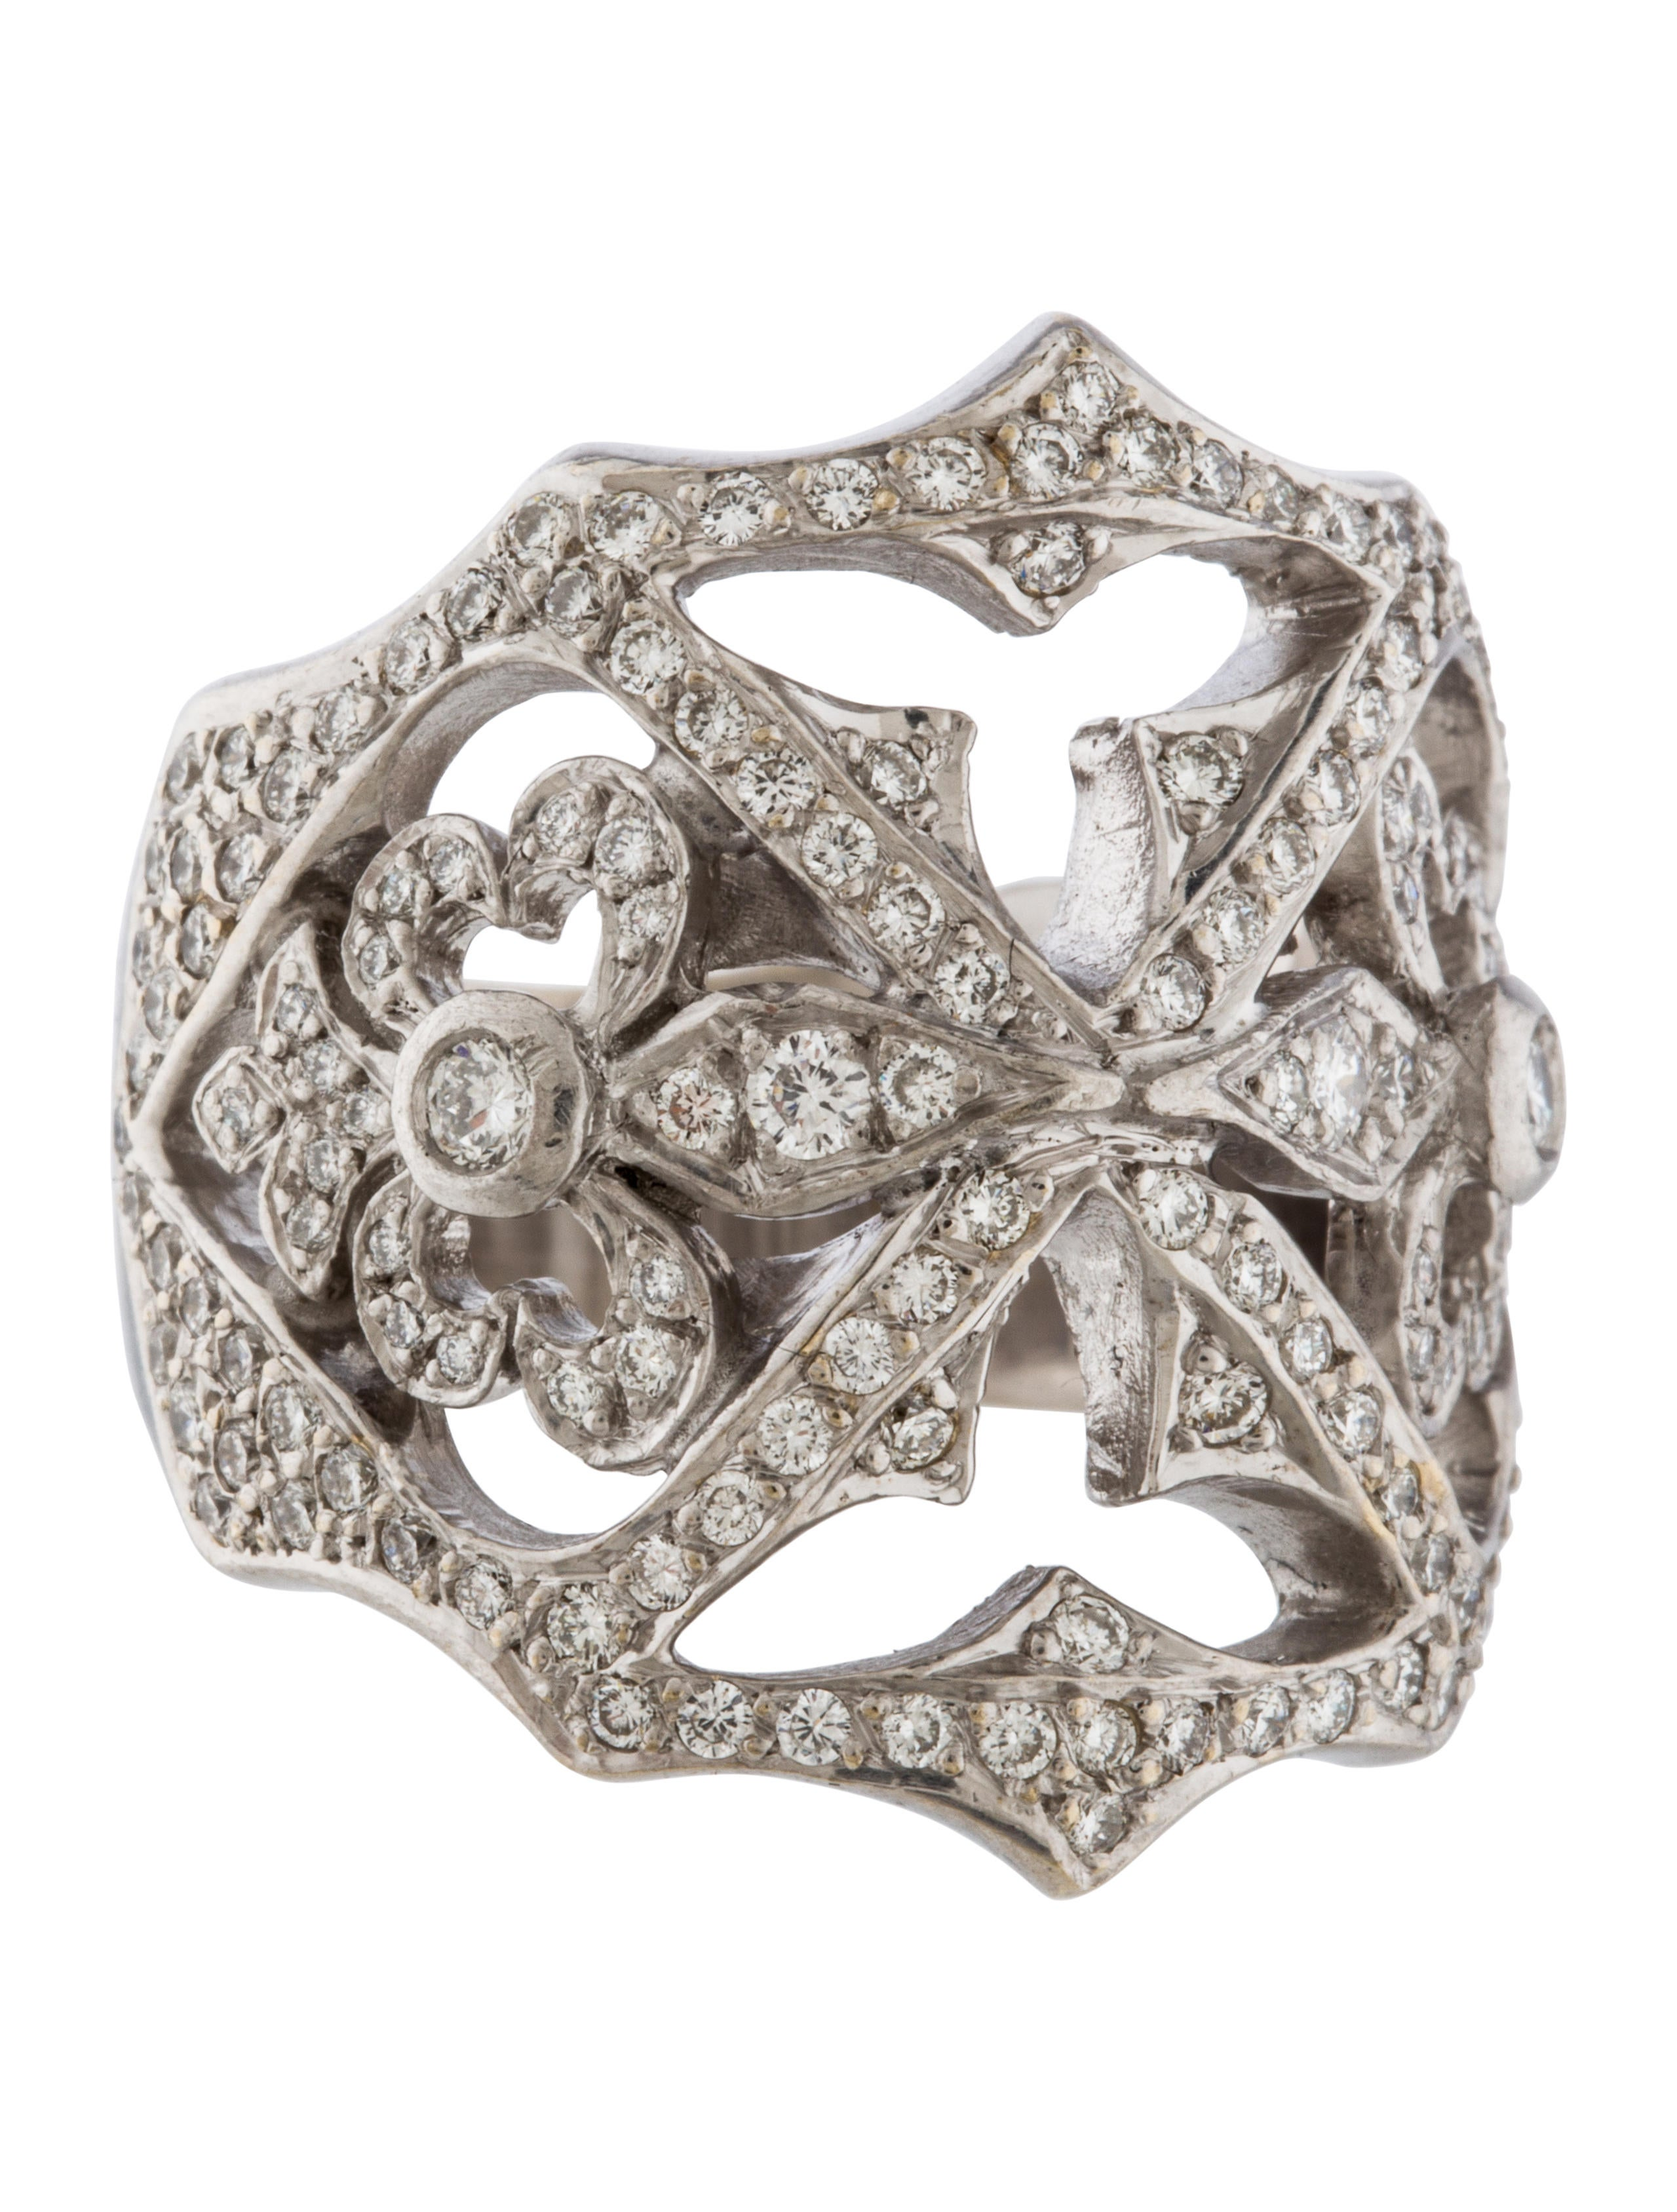 loree rodkin cage ring rings lrr20162 the